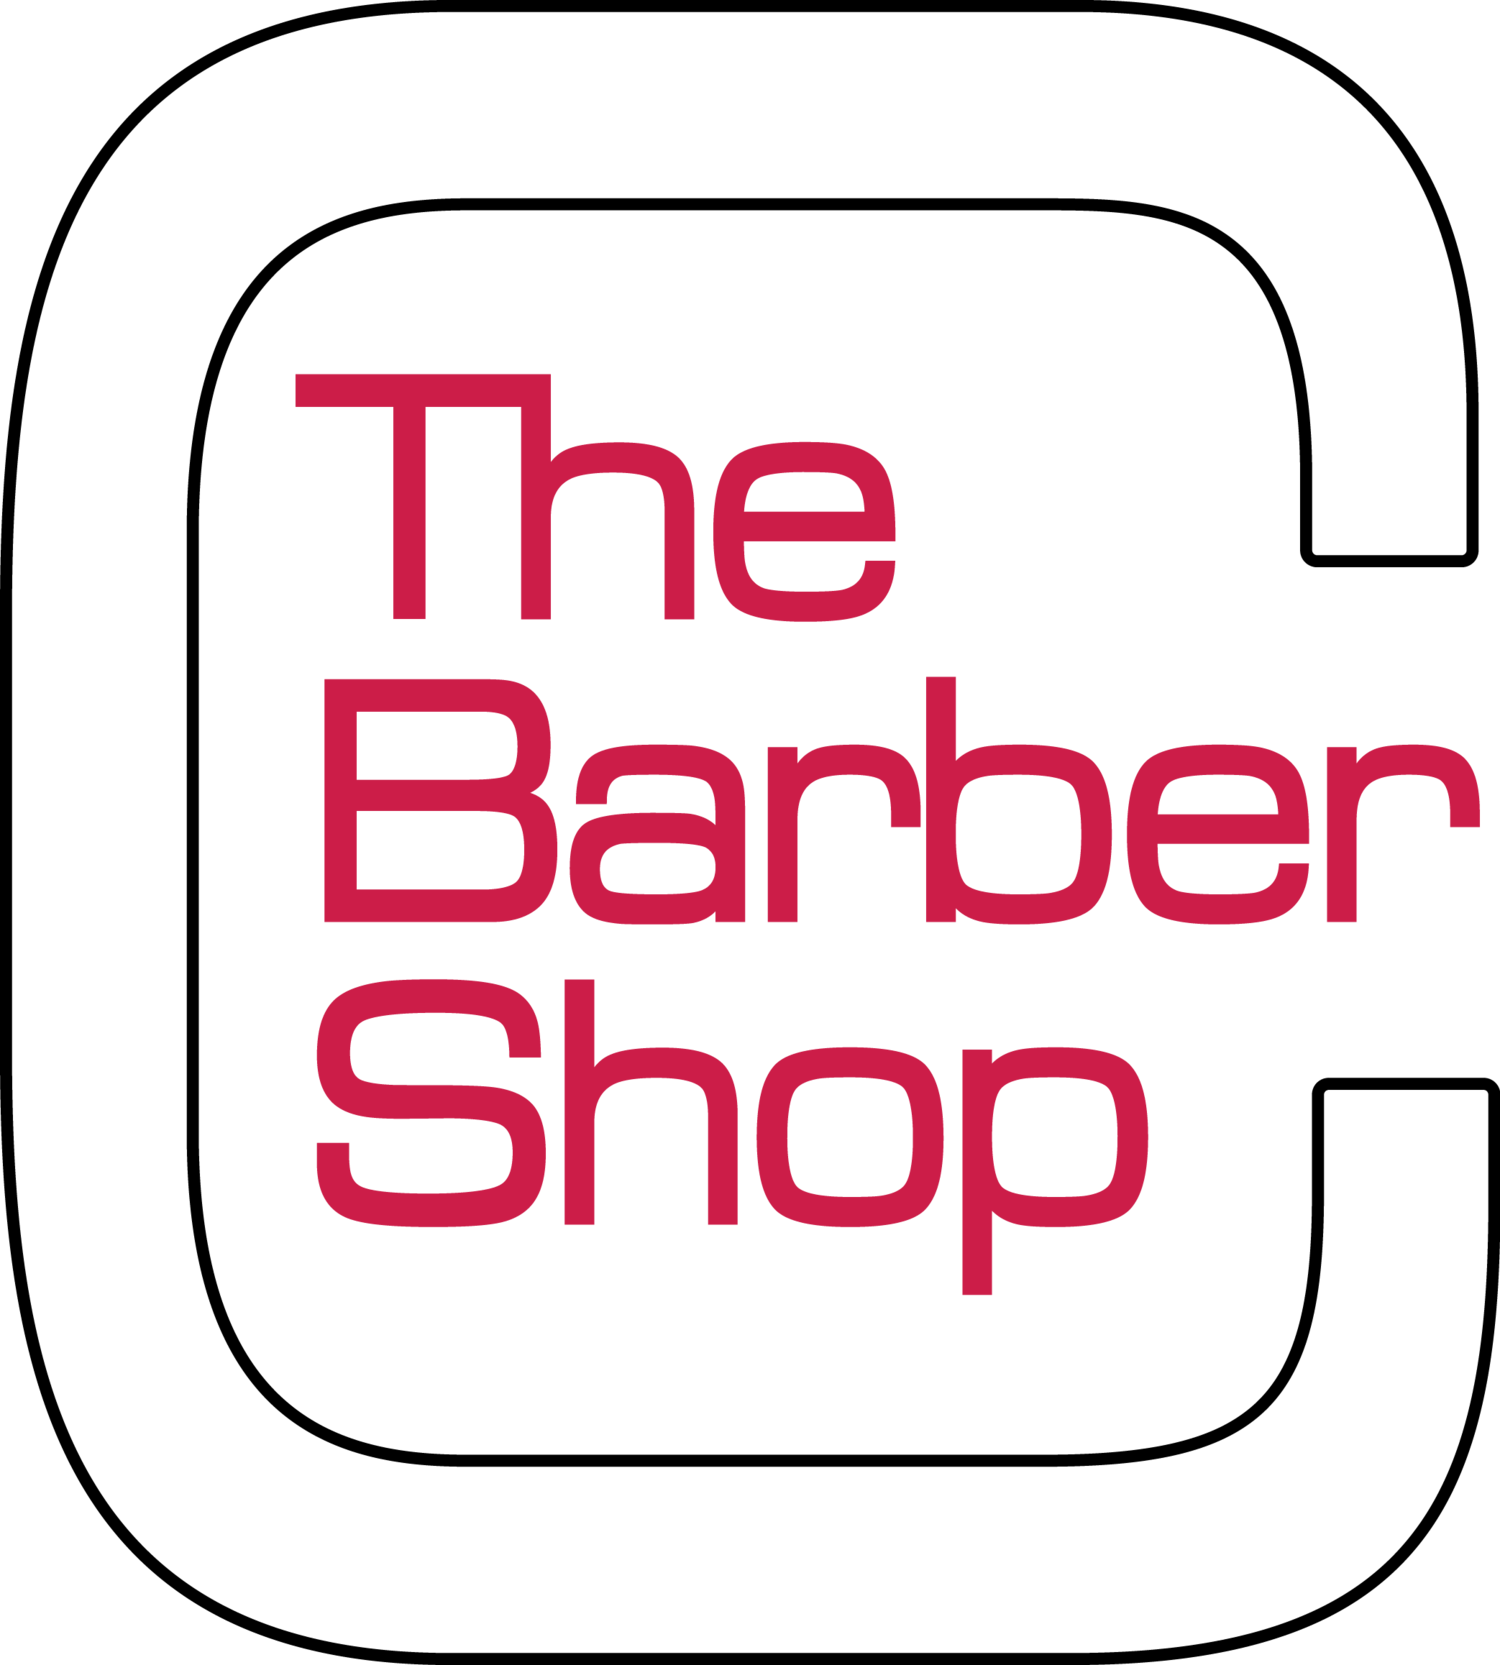 The Barbershopct